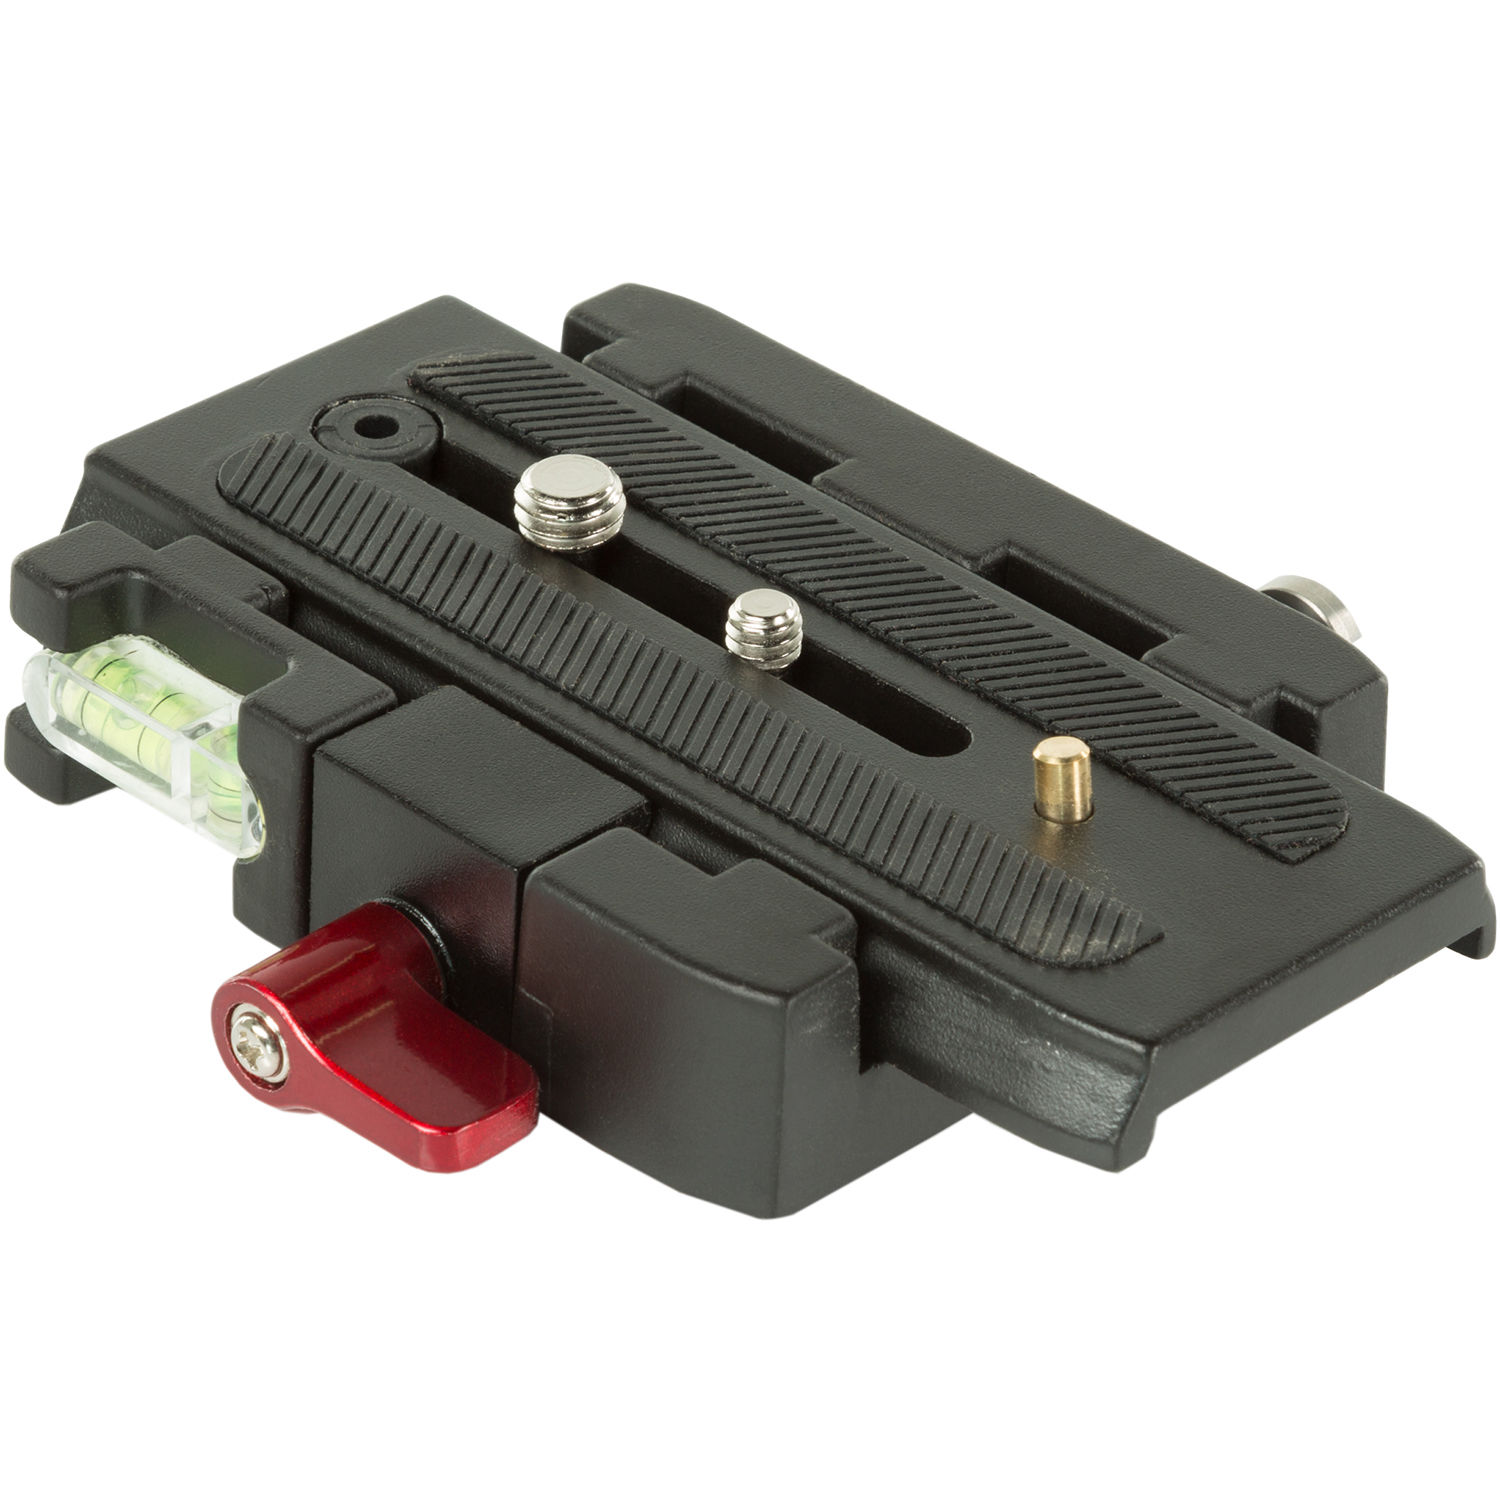 SHAPE Quick Release Plate Adapter